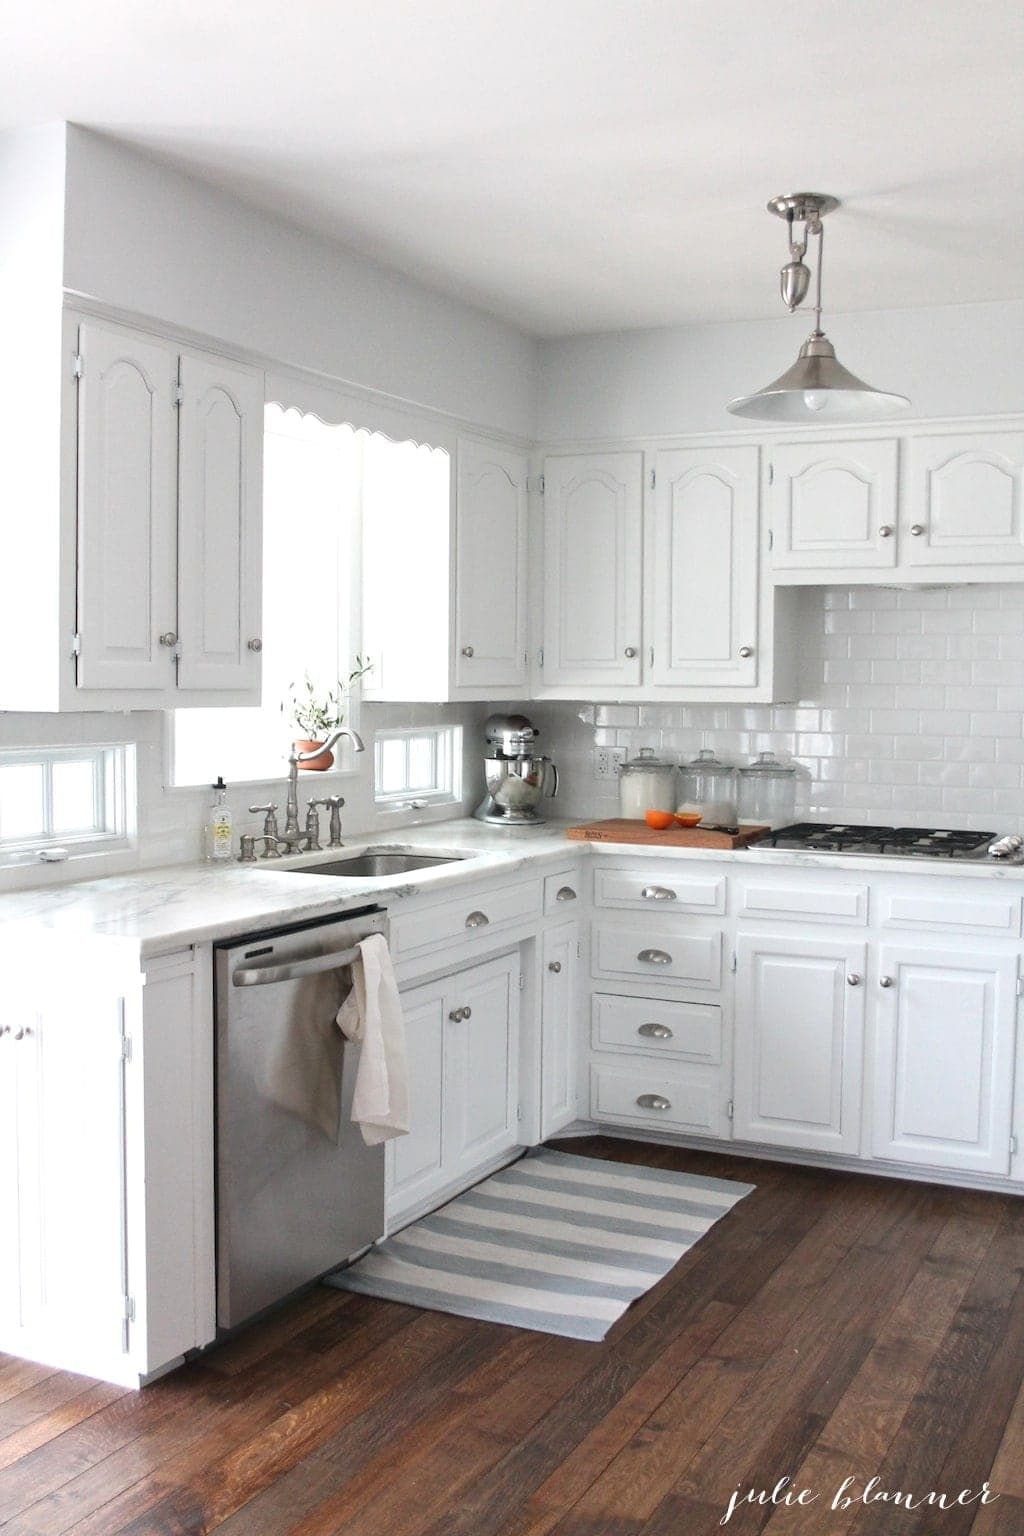 The Risks Benefits Of Marble Countertops